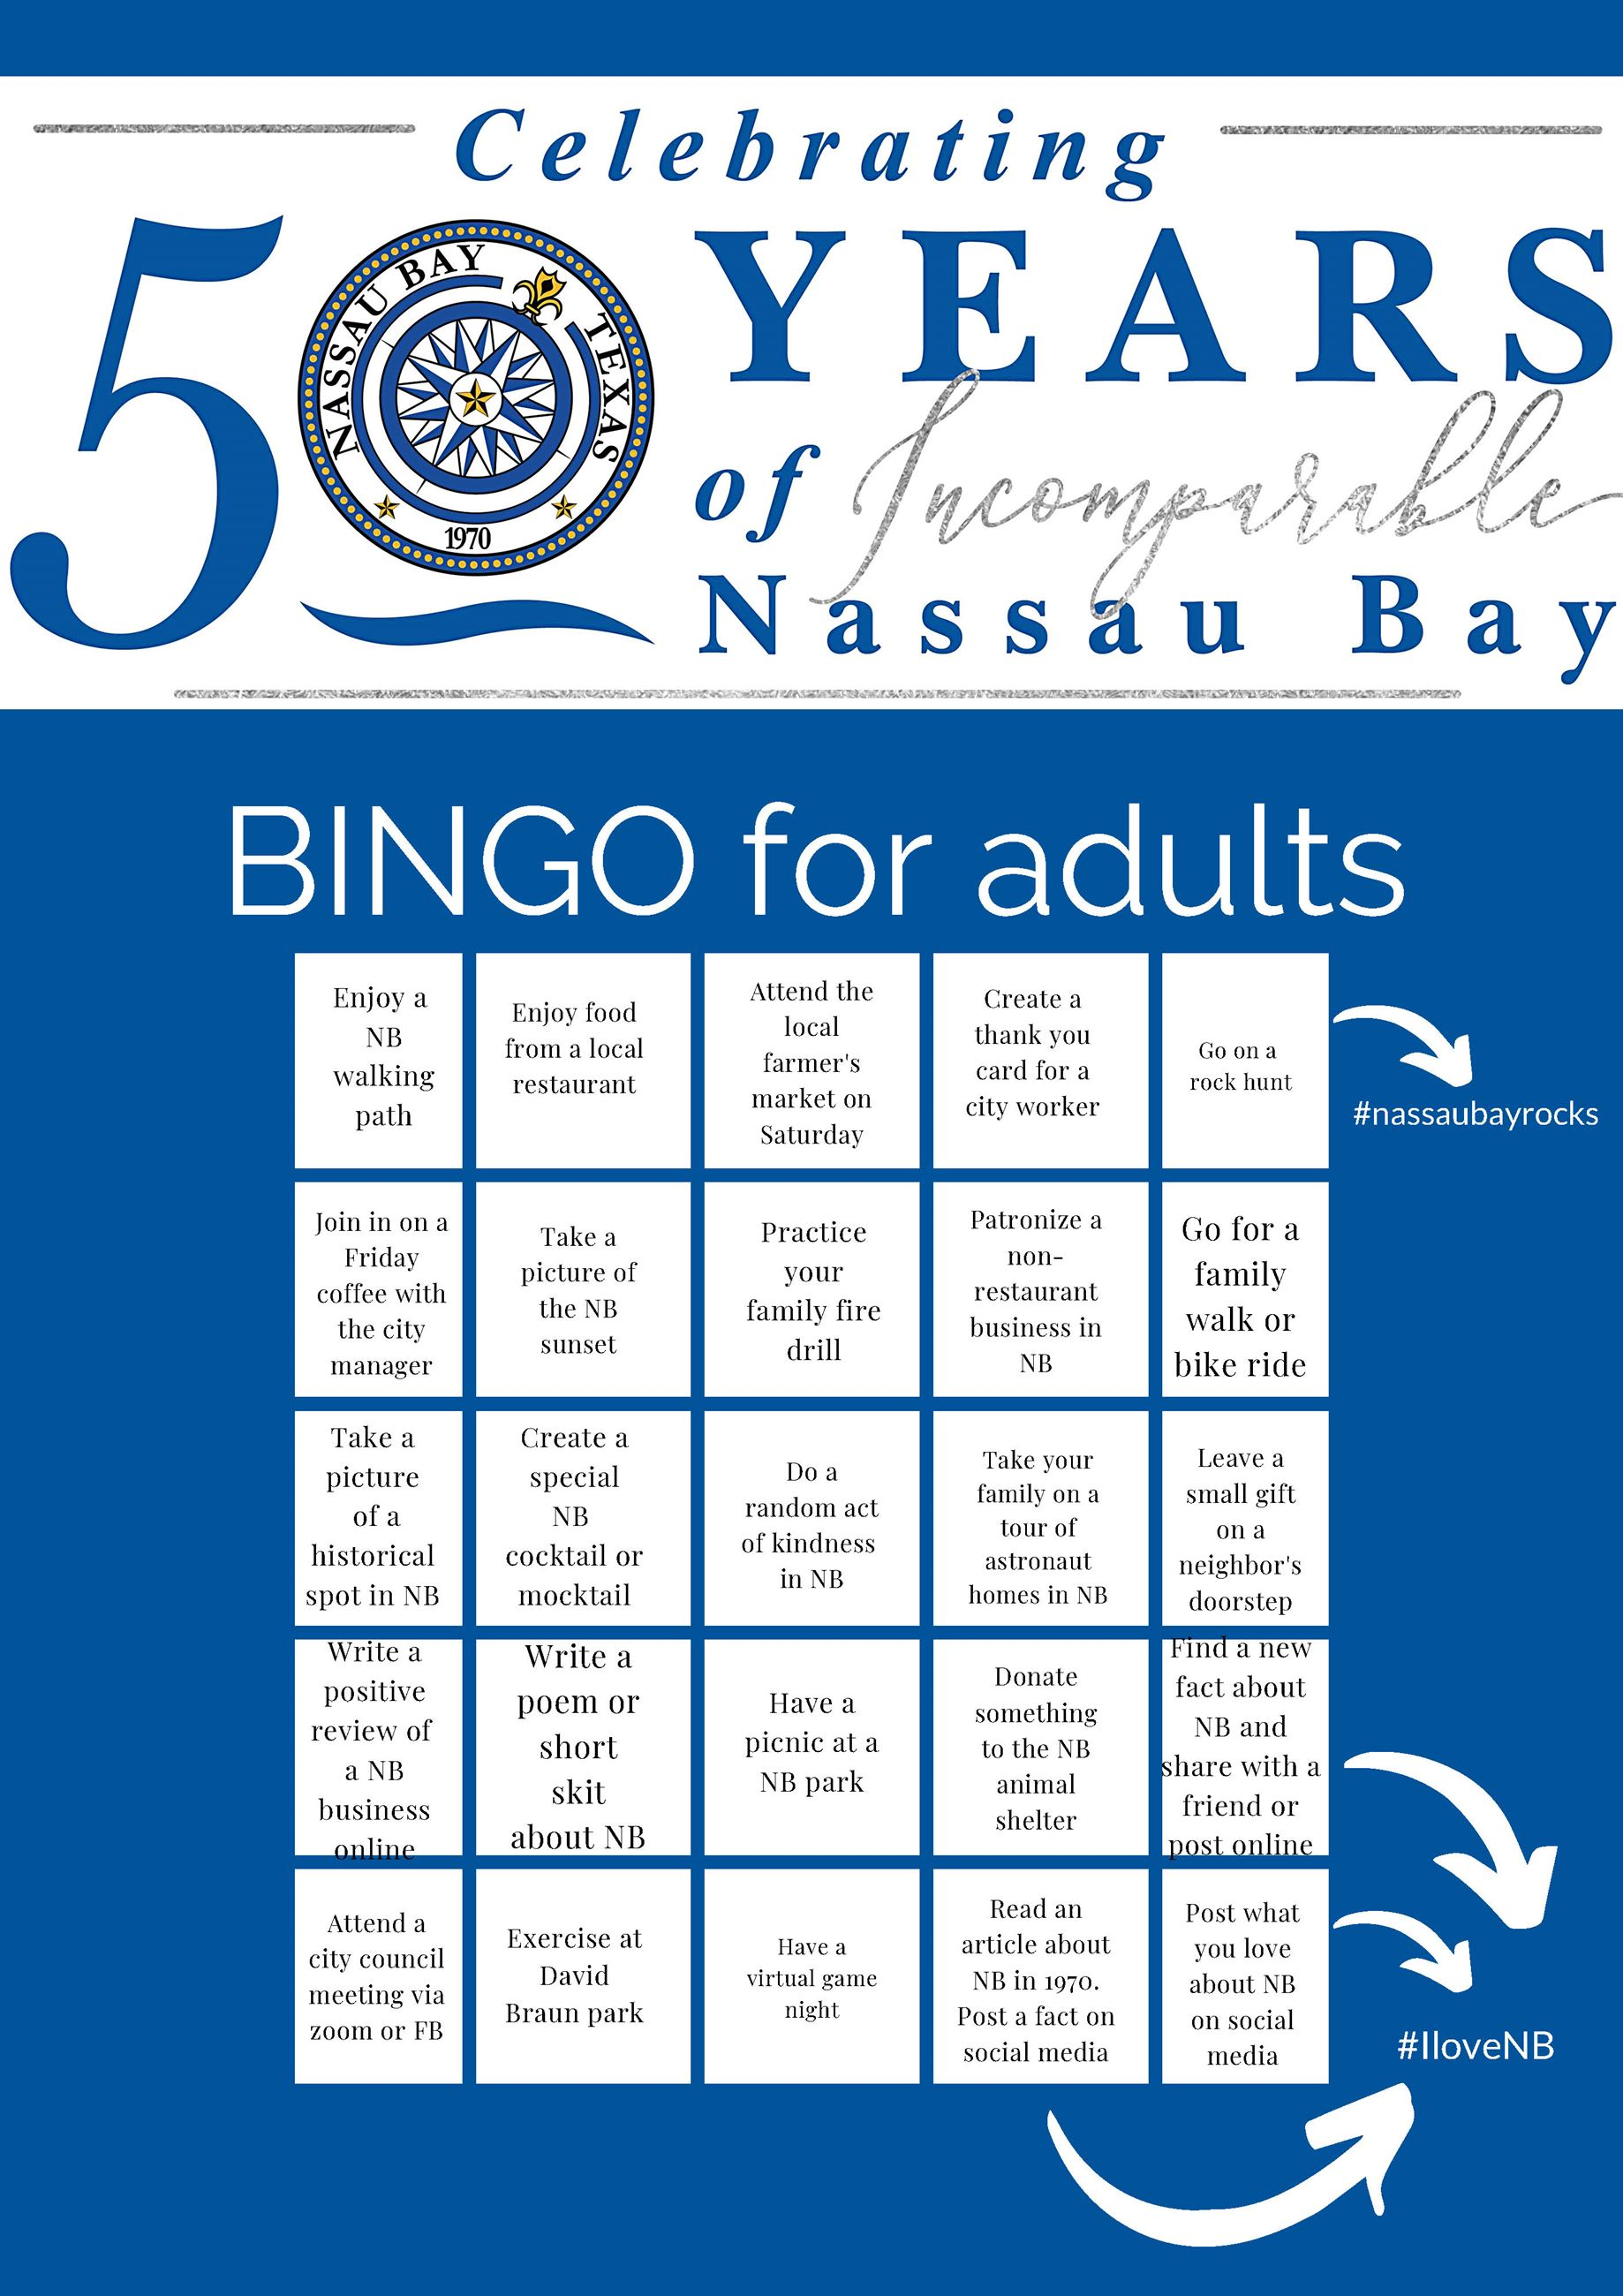 Nassau Bay 50th Bingo ADULTS Opens in new window